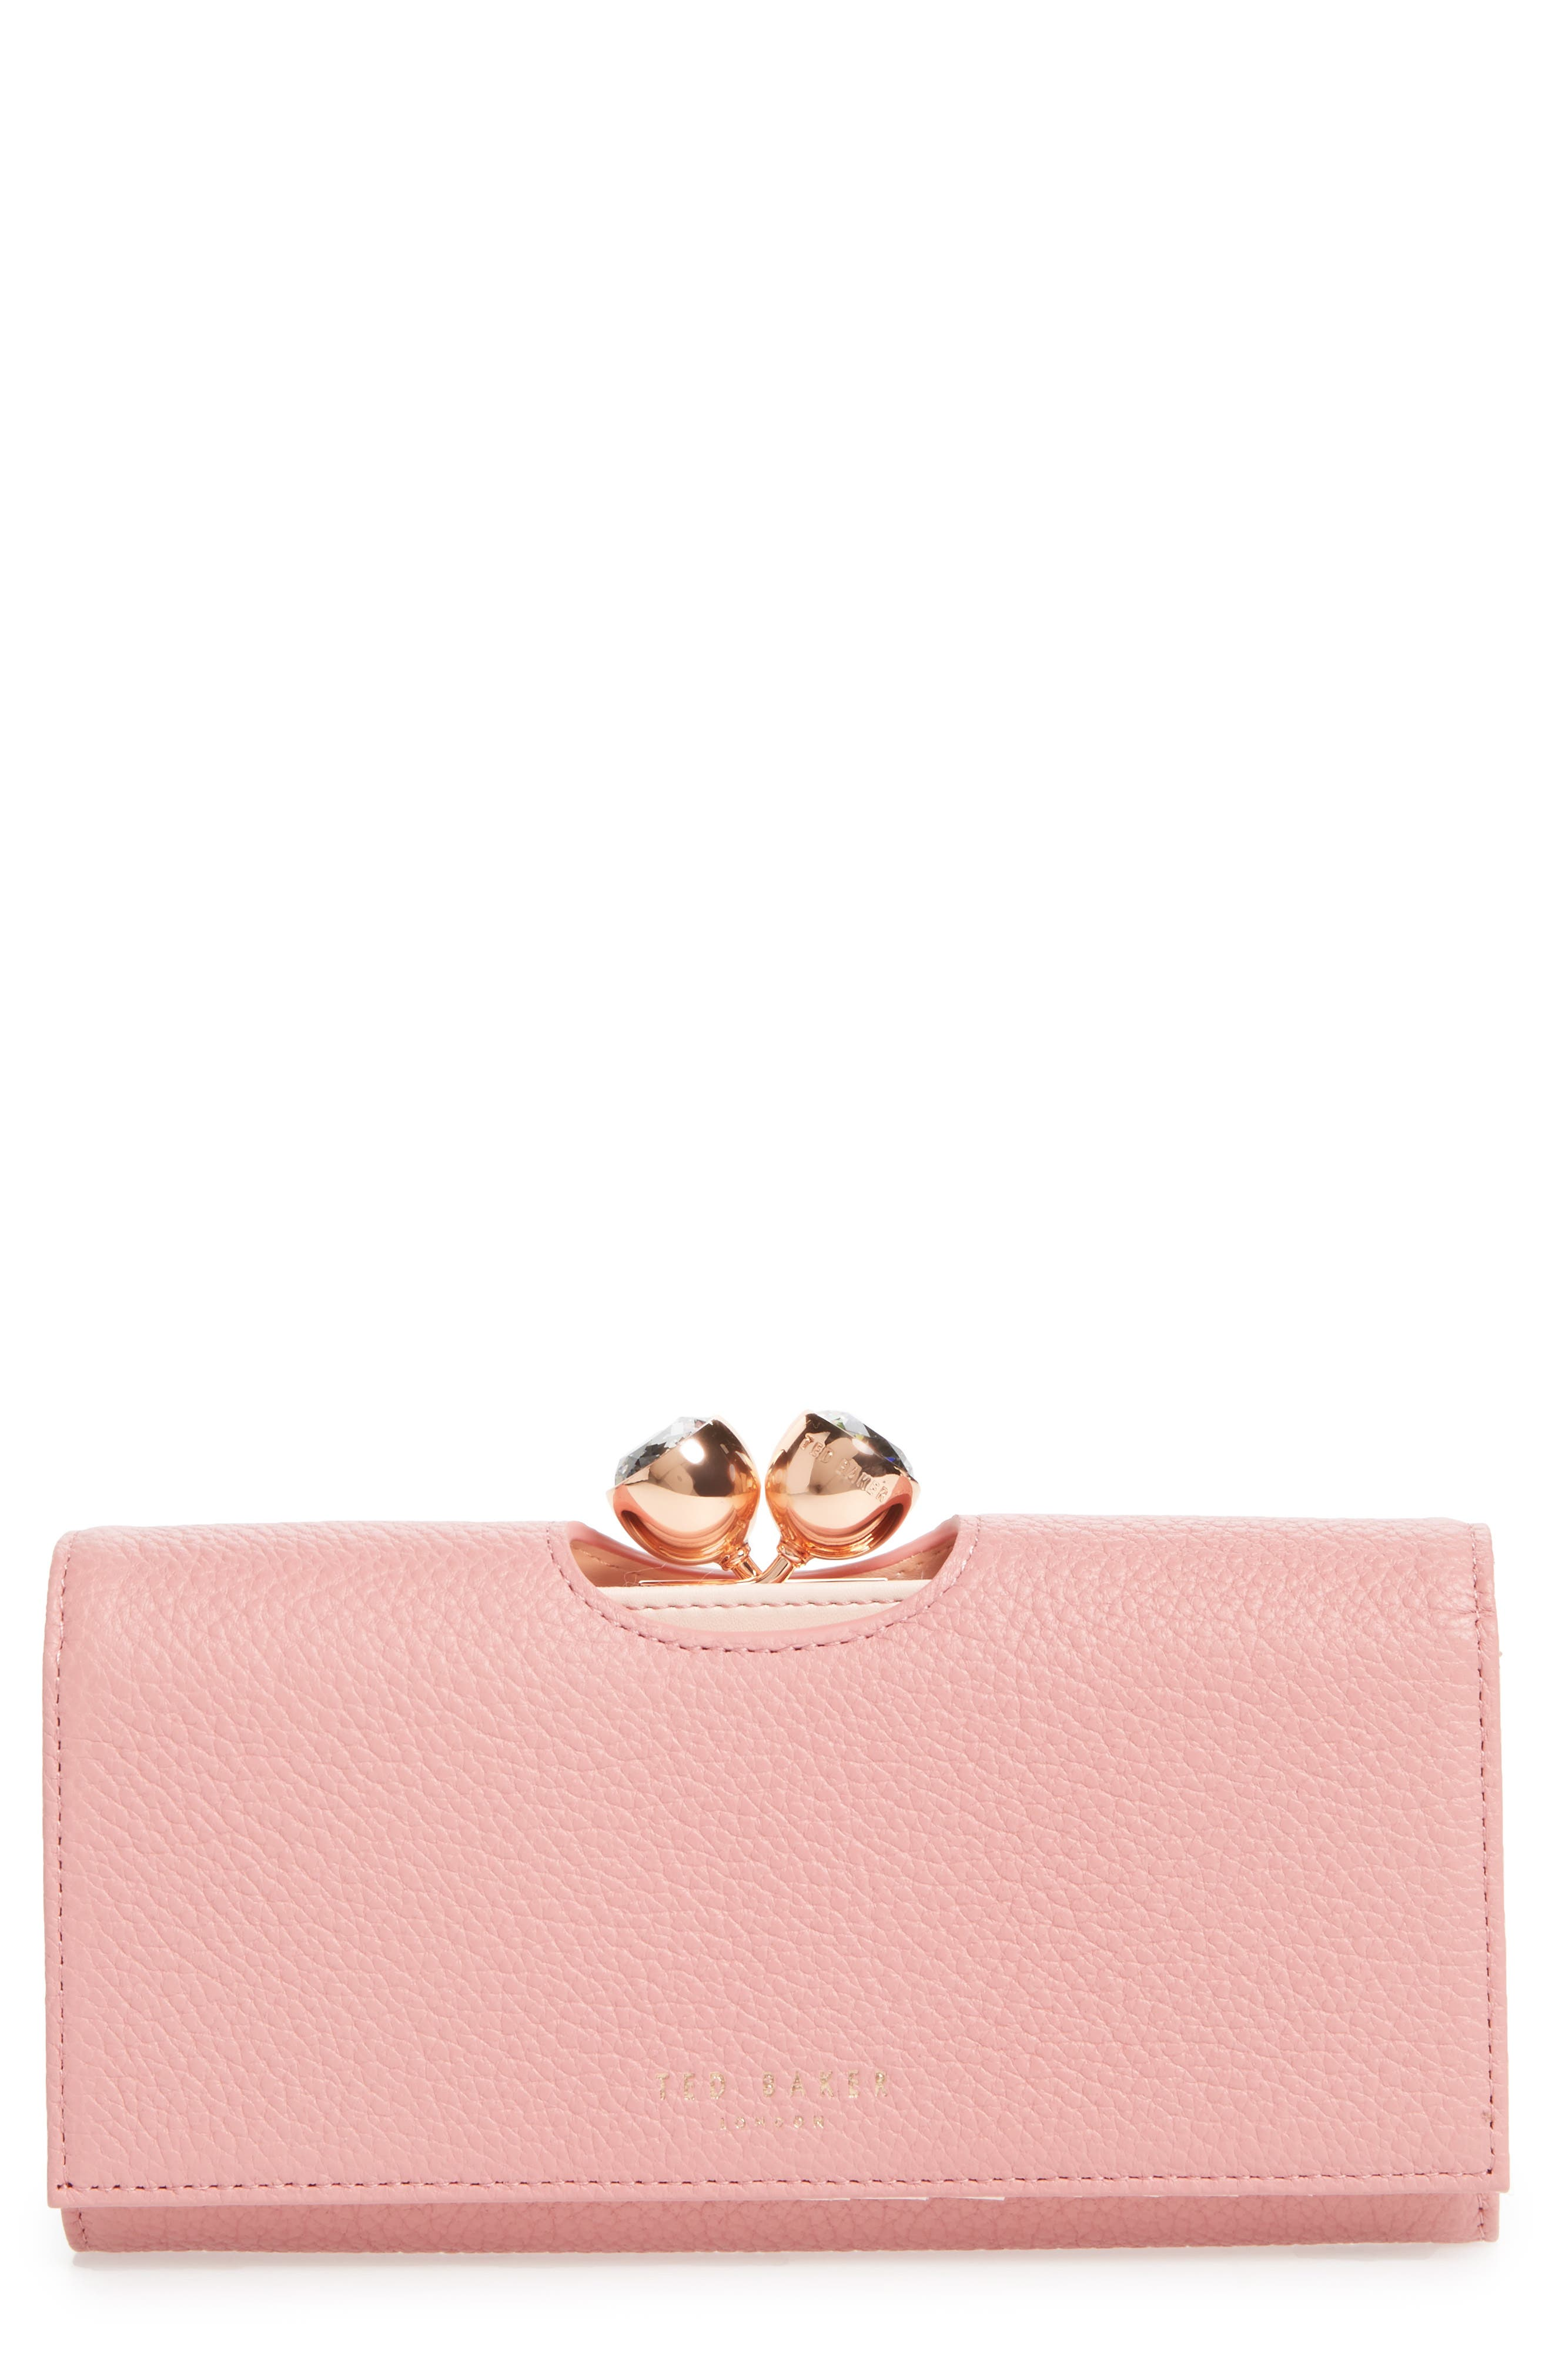 Ted Baker London Tammyy Pebbled Leather Matinée Wallet